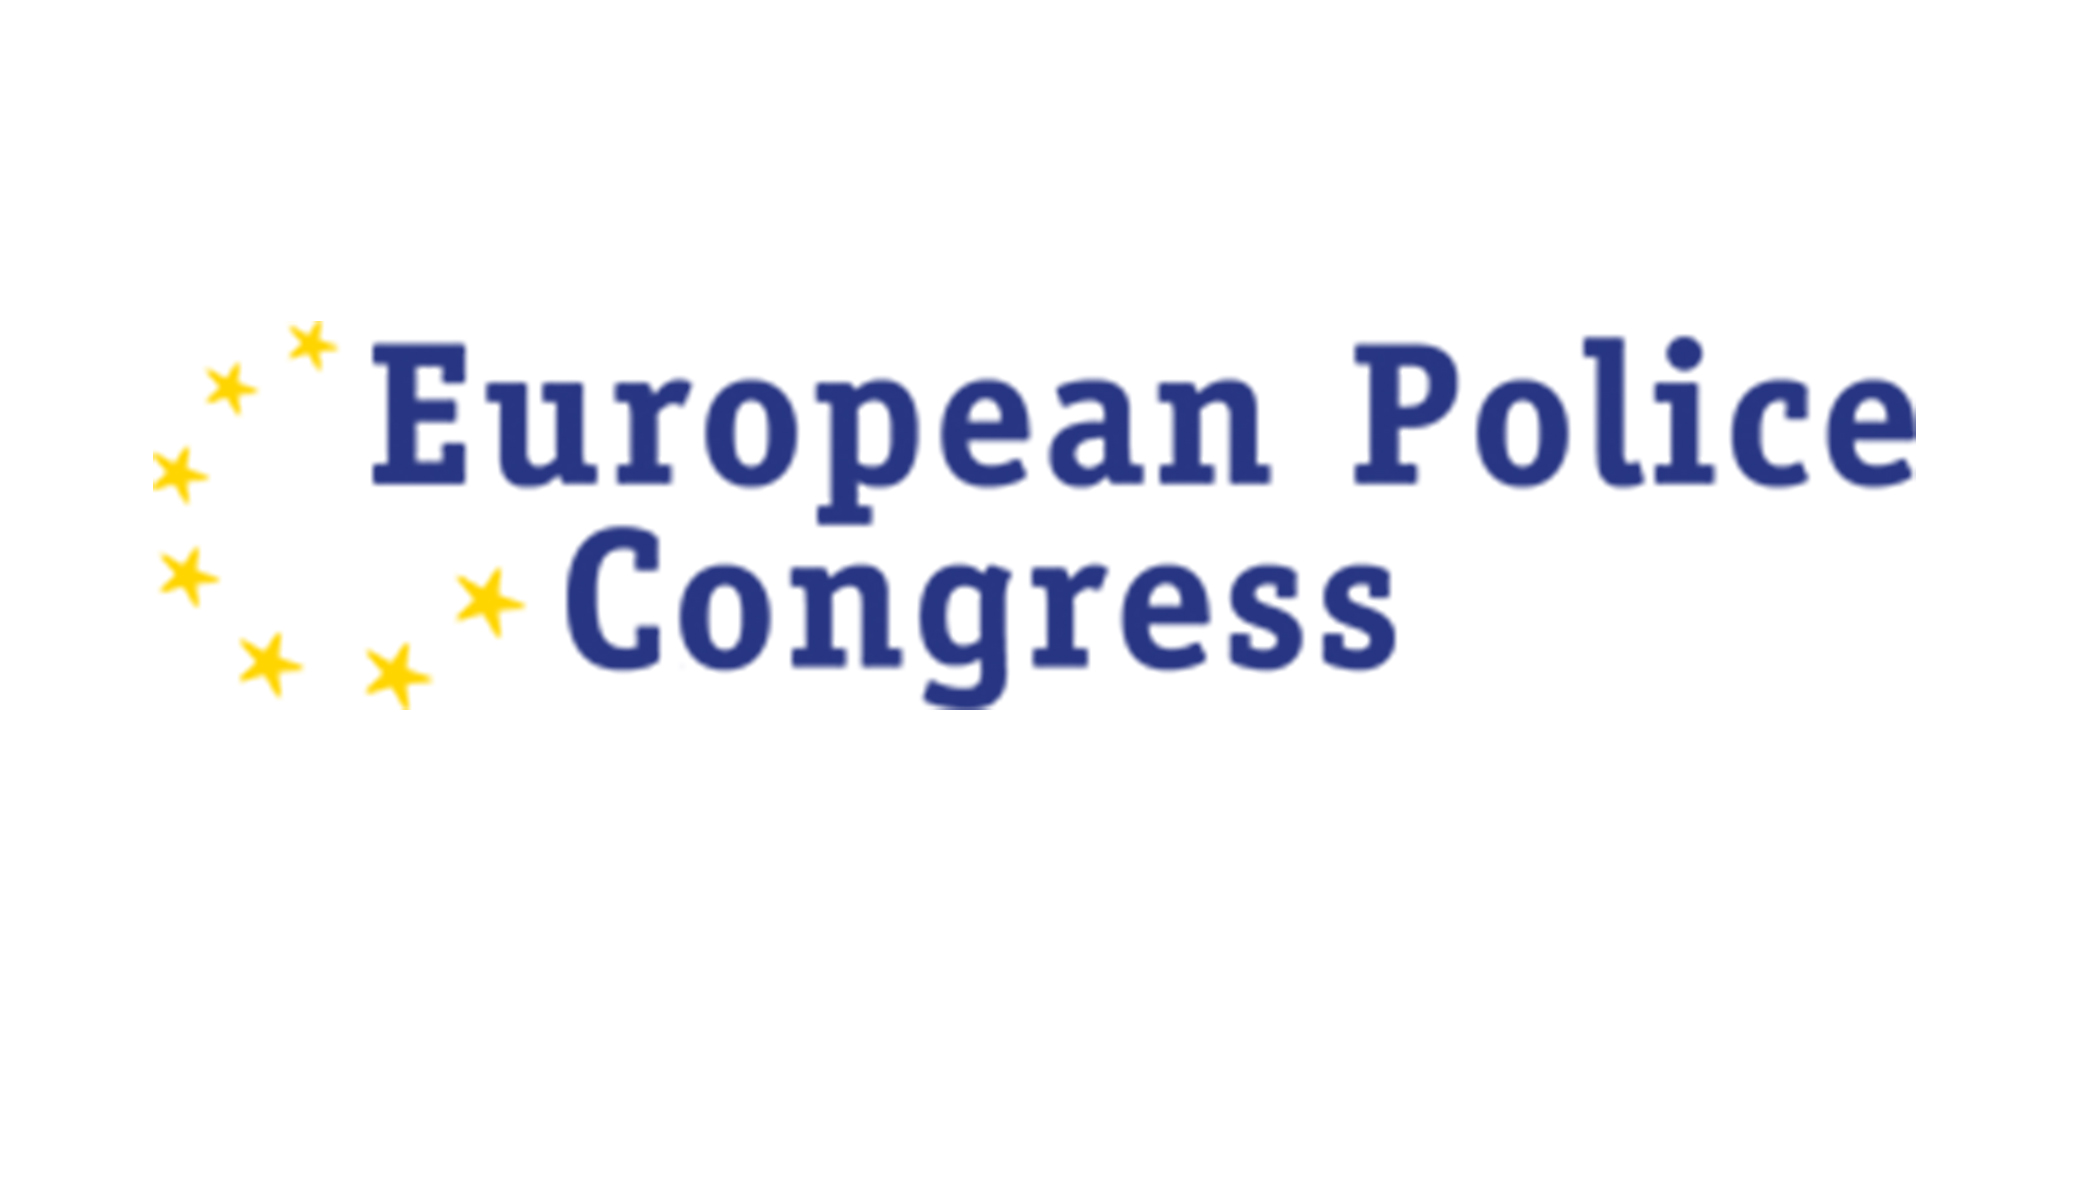 Pix4D at European Police Congress 2020